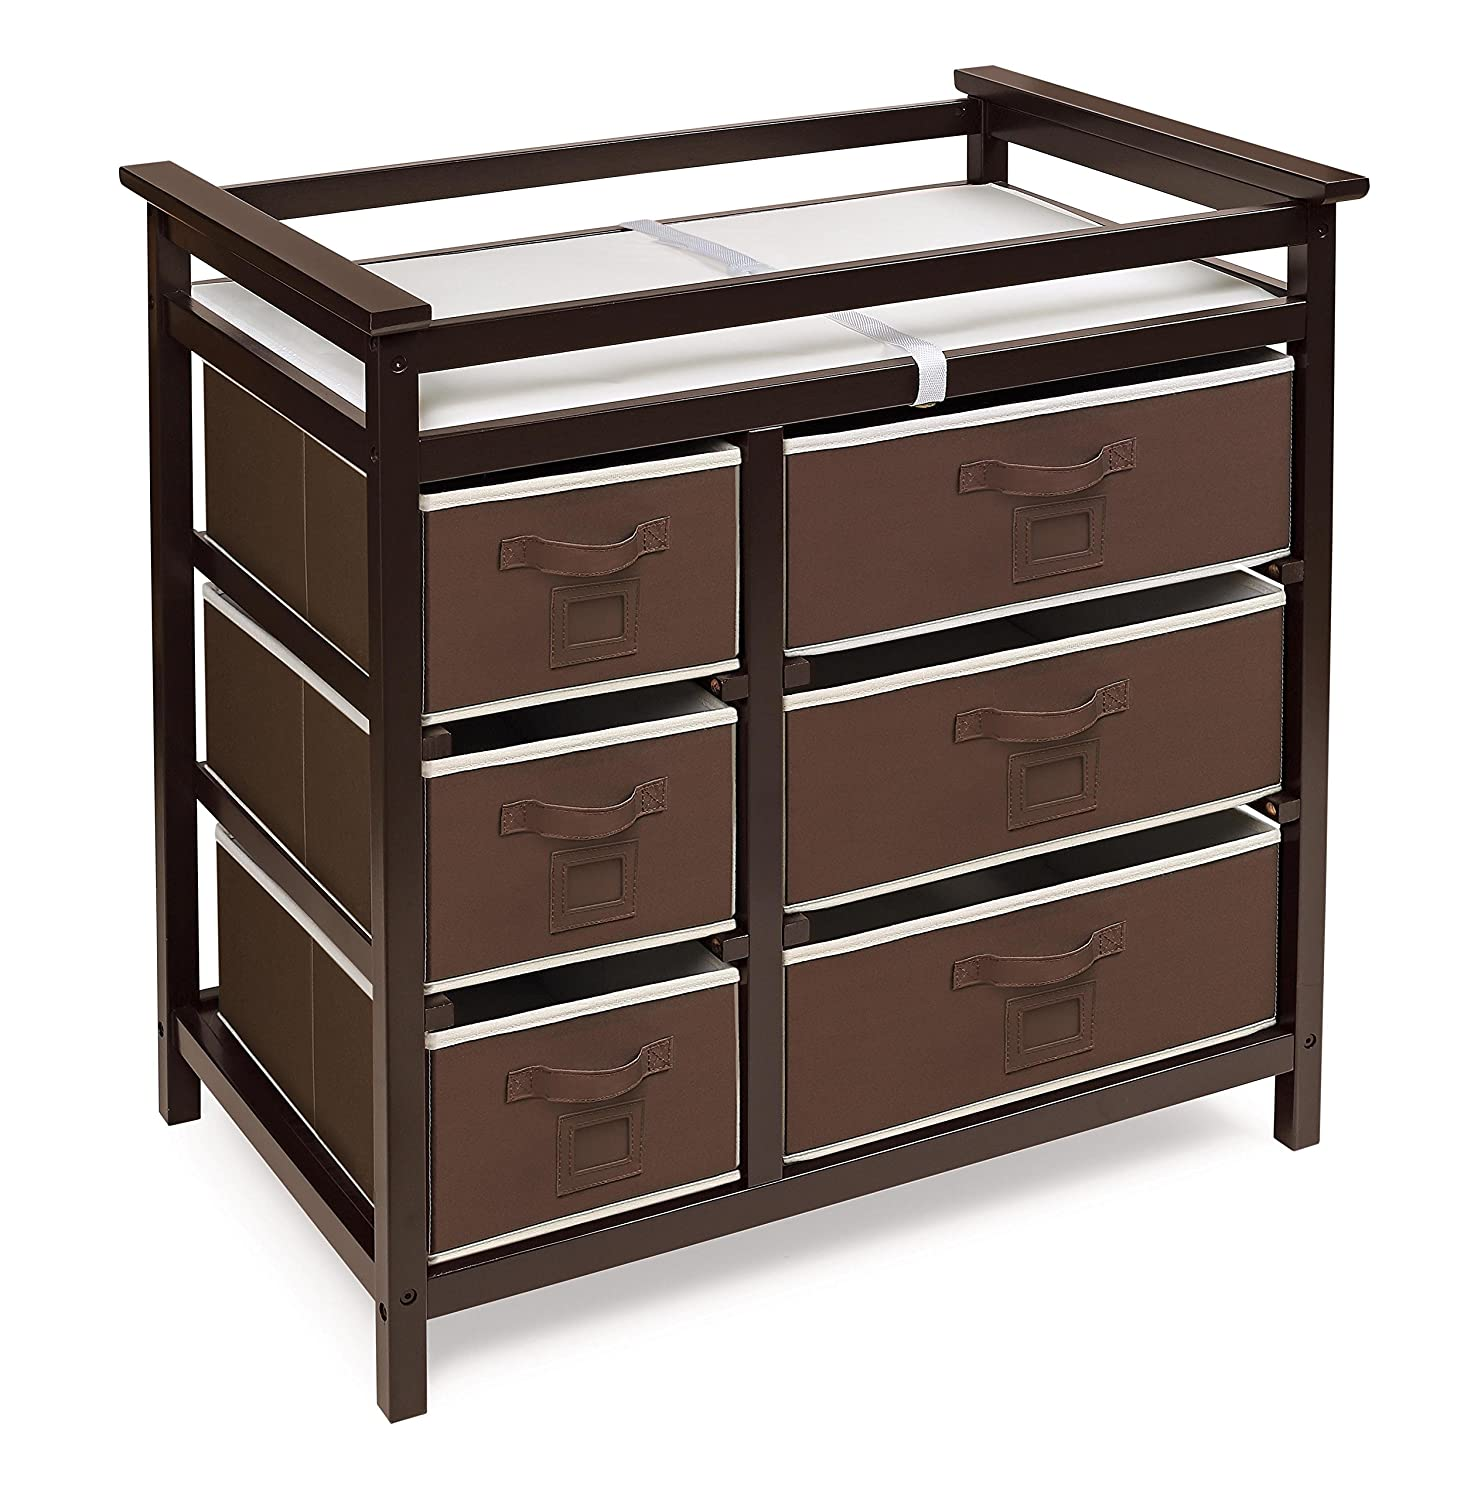 Badger Basket Modern Baby Changing Table with Six Baskets, Espresso/Ecru 25131